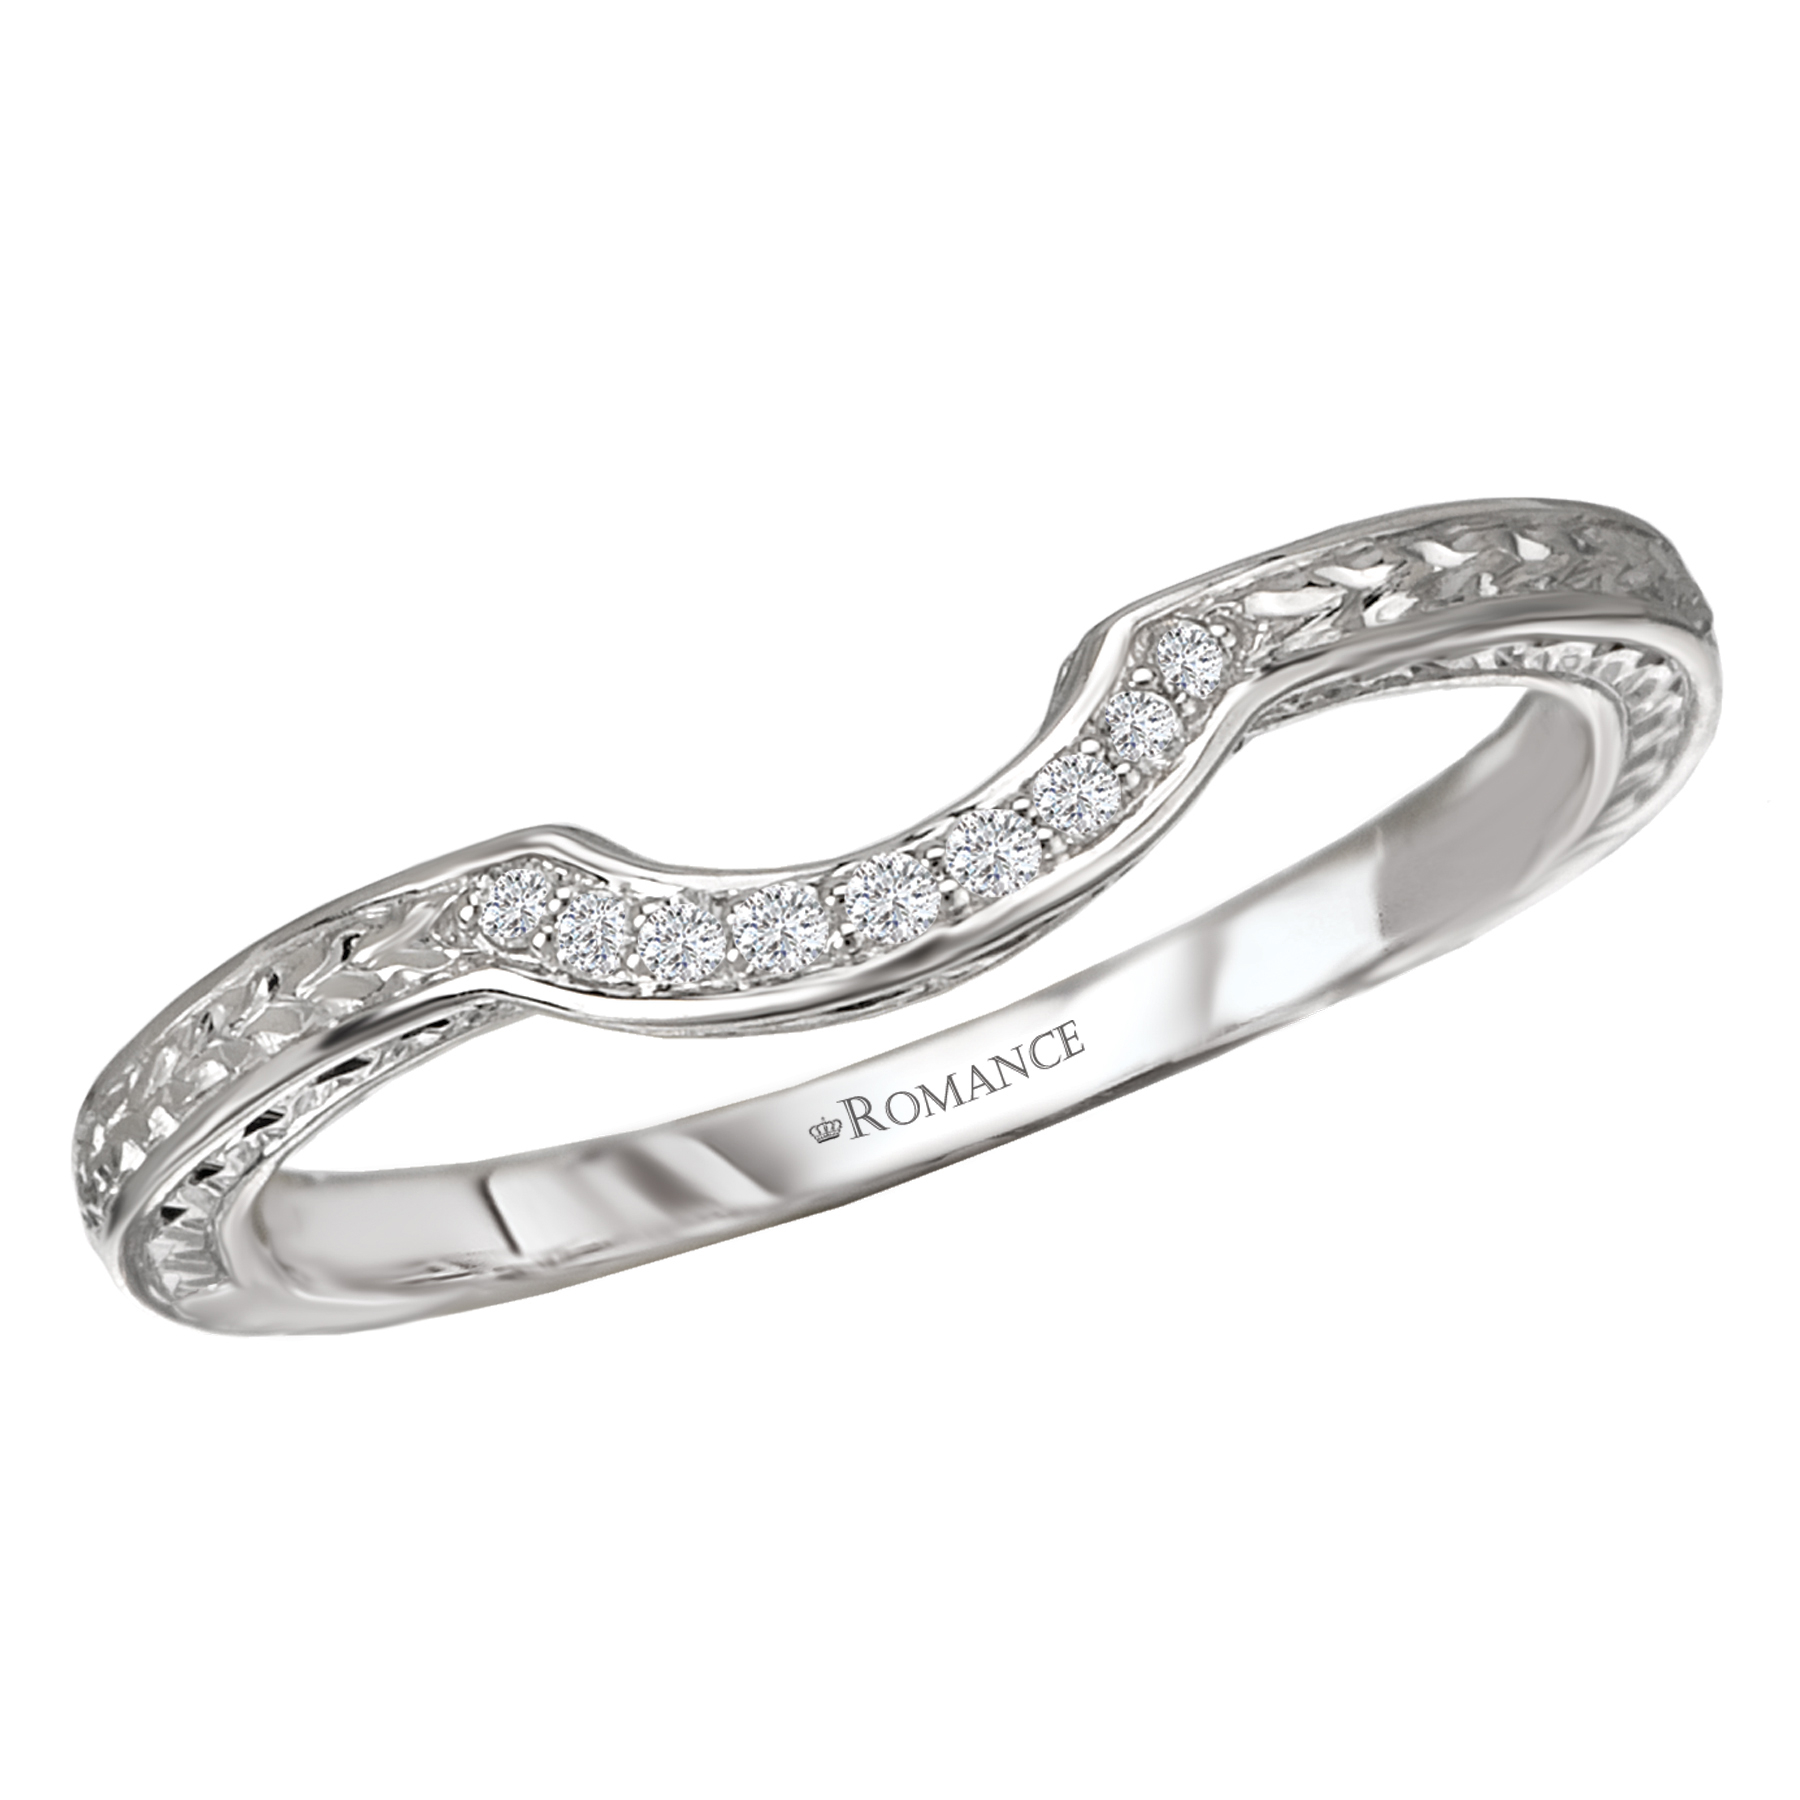 Romance Wedding Bands 117582-100W product image